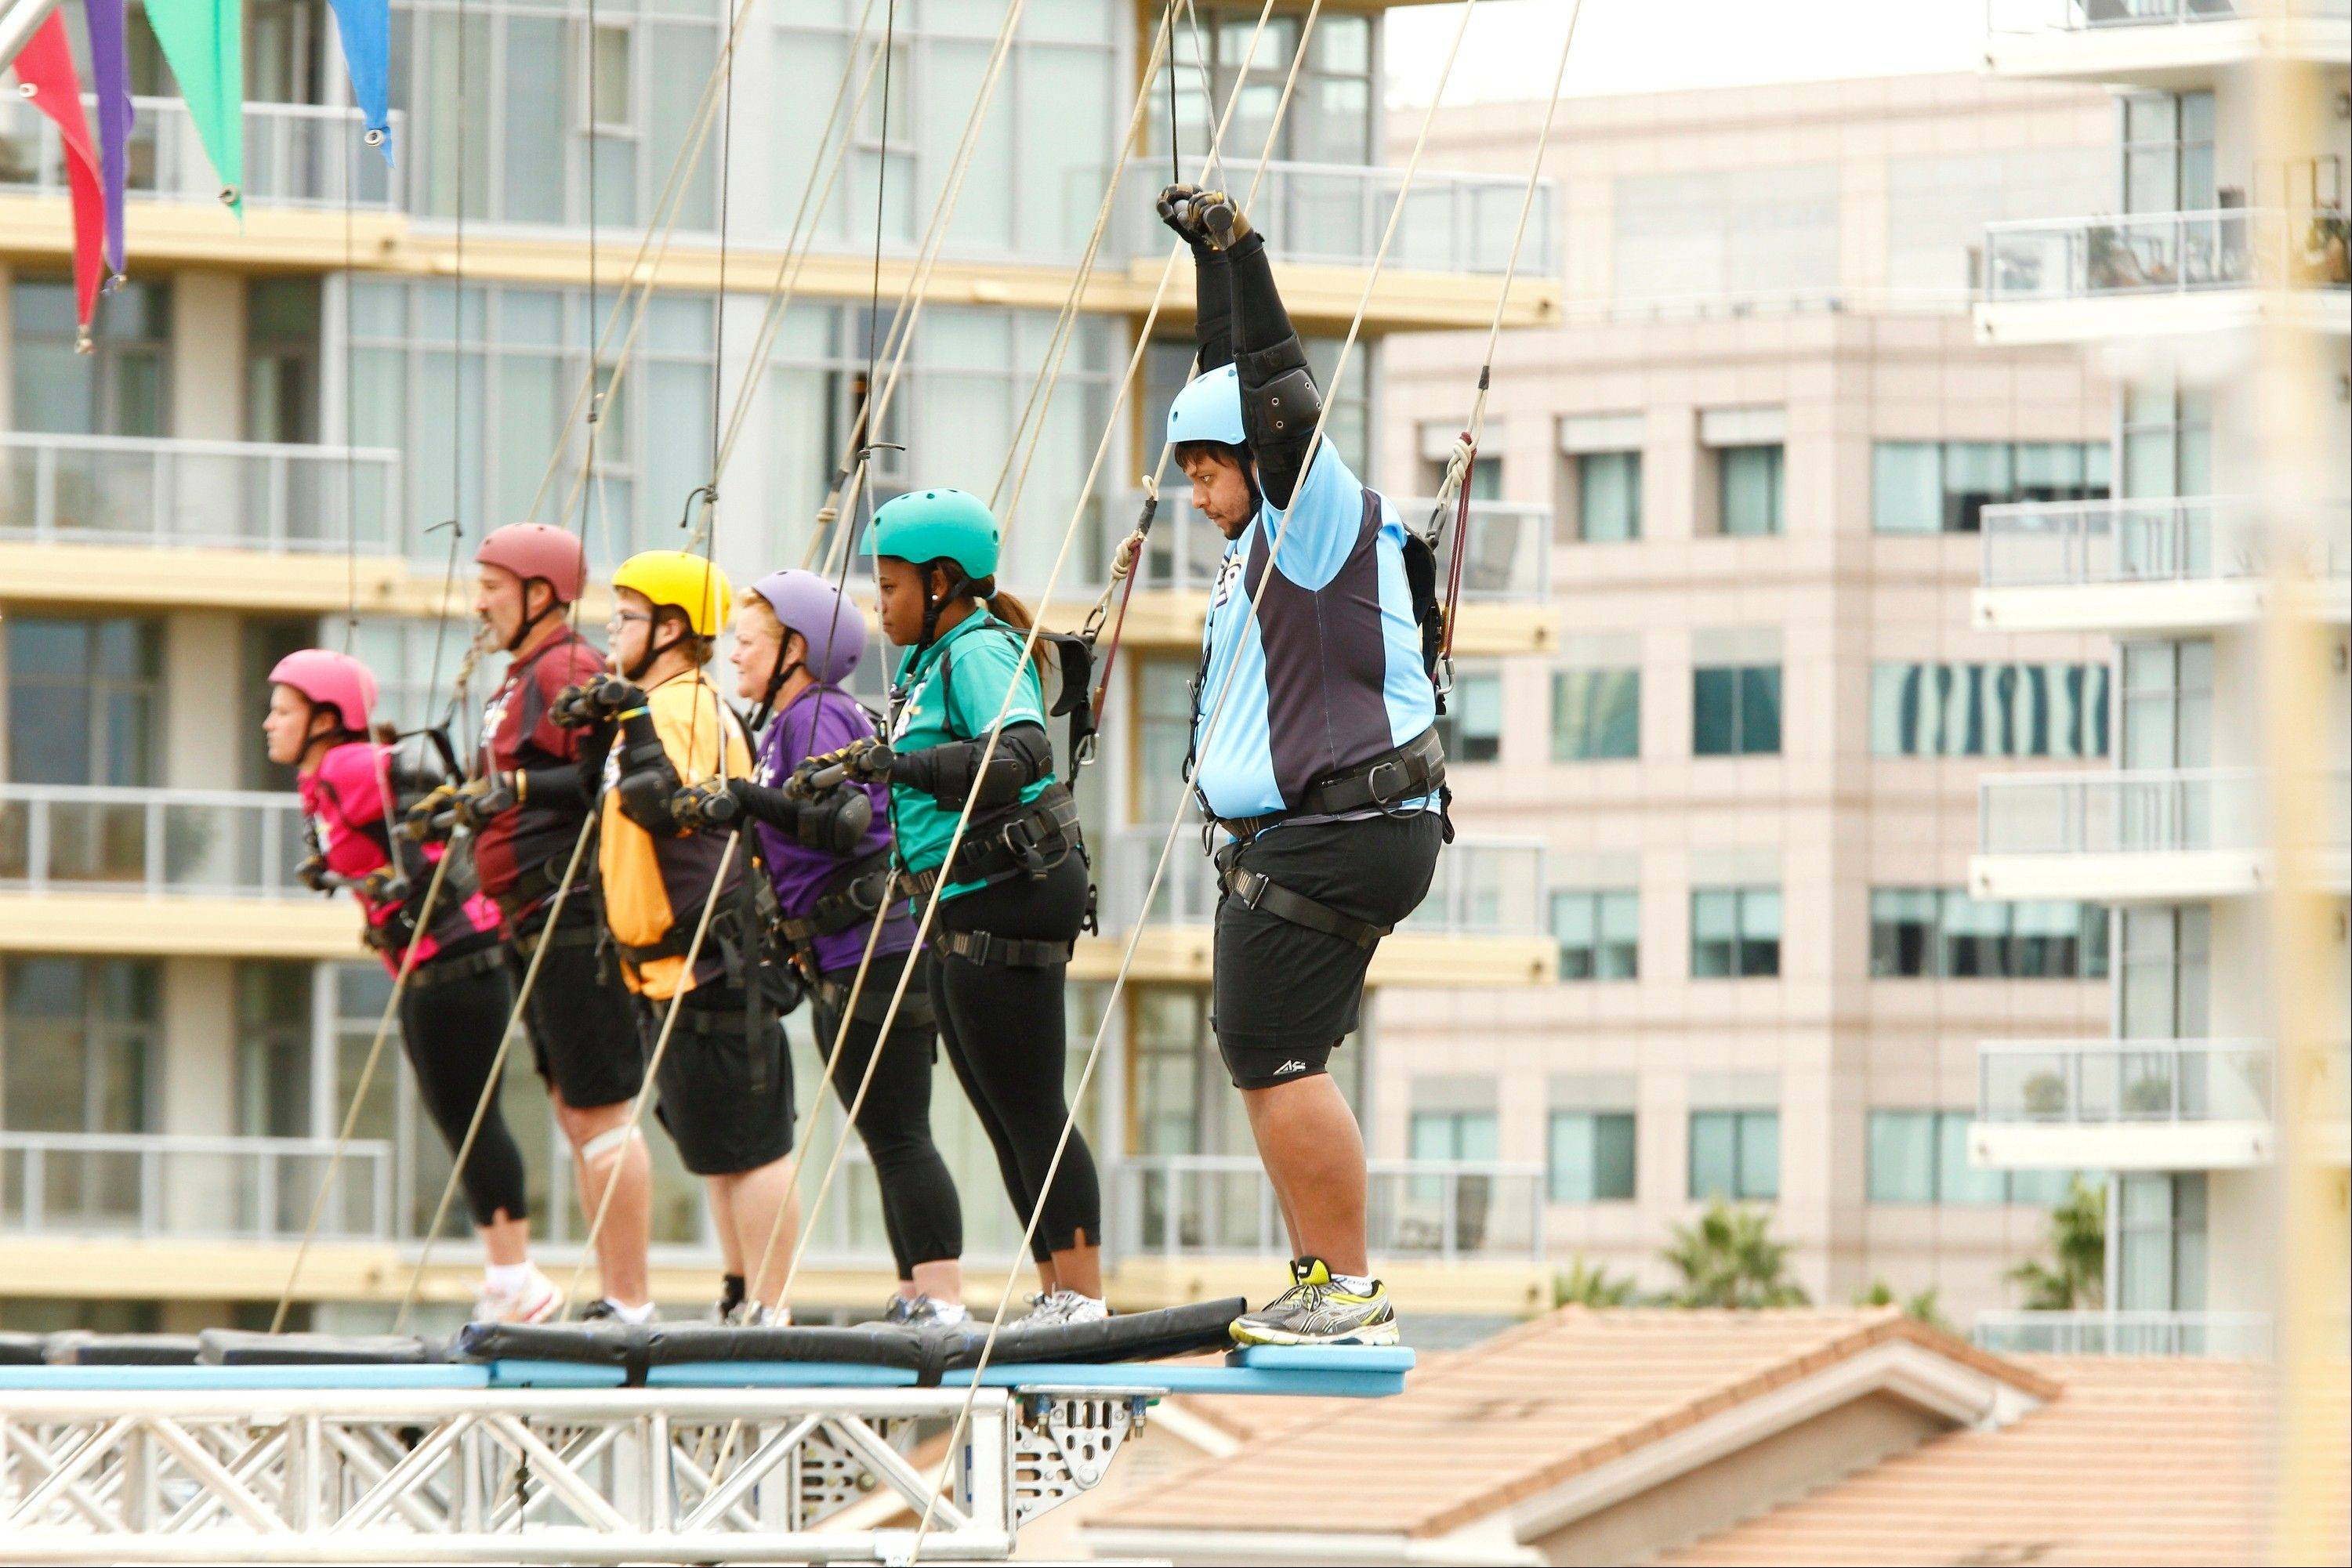 From left to right, Wheeling�s Danni Allen, Joe Ostaszewski, Jackson Carter, Gina McDonald, Alexandra �Alex� Reid, Jeff Nichols try to conquer their fears on �The Biggest Loser.�